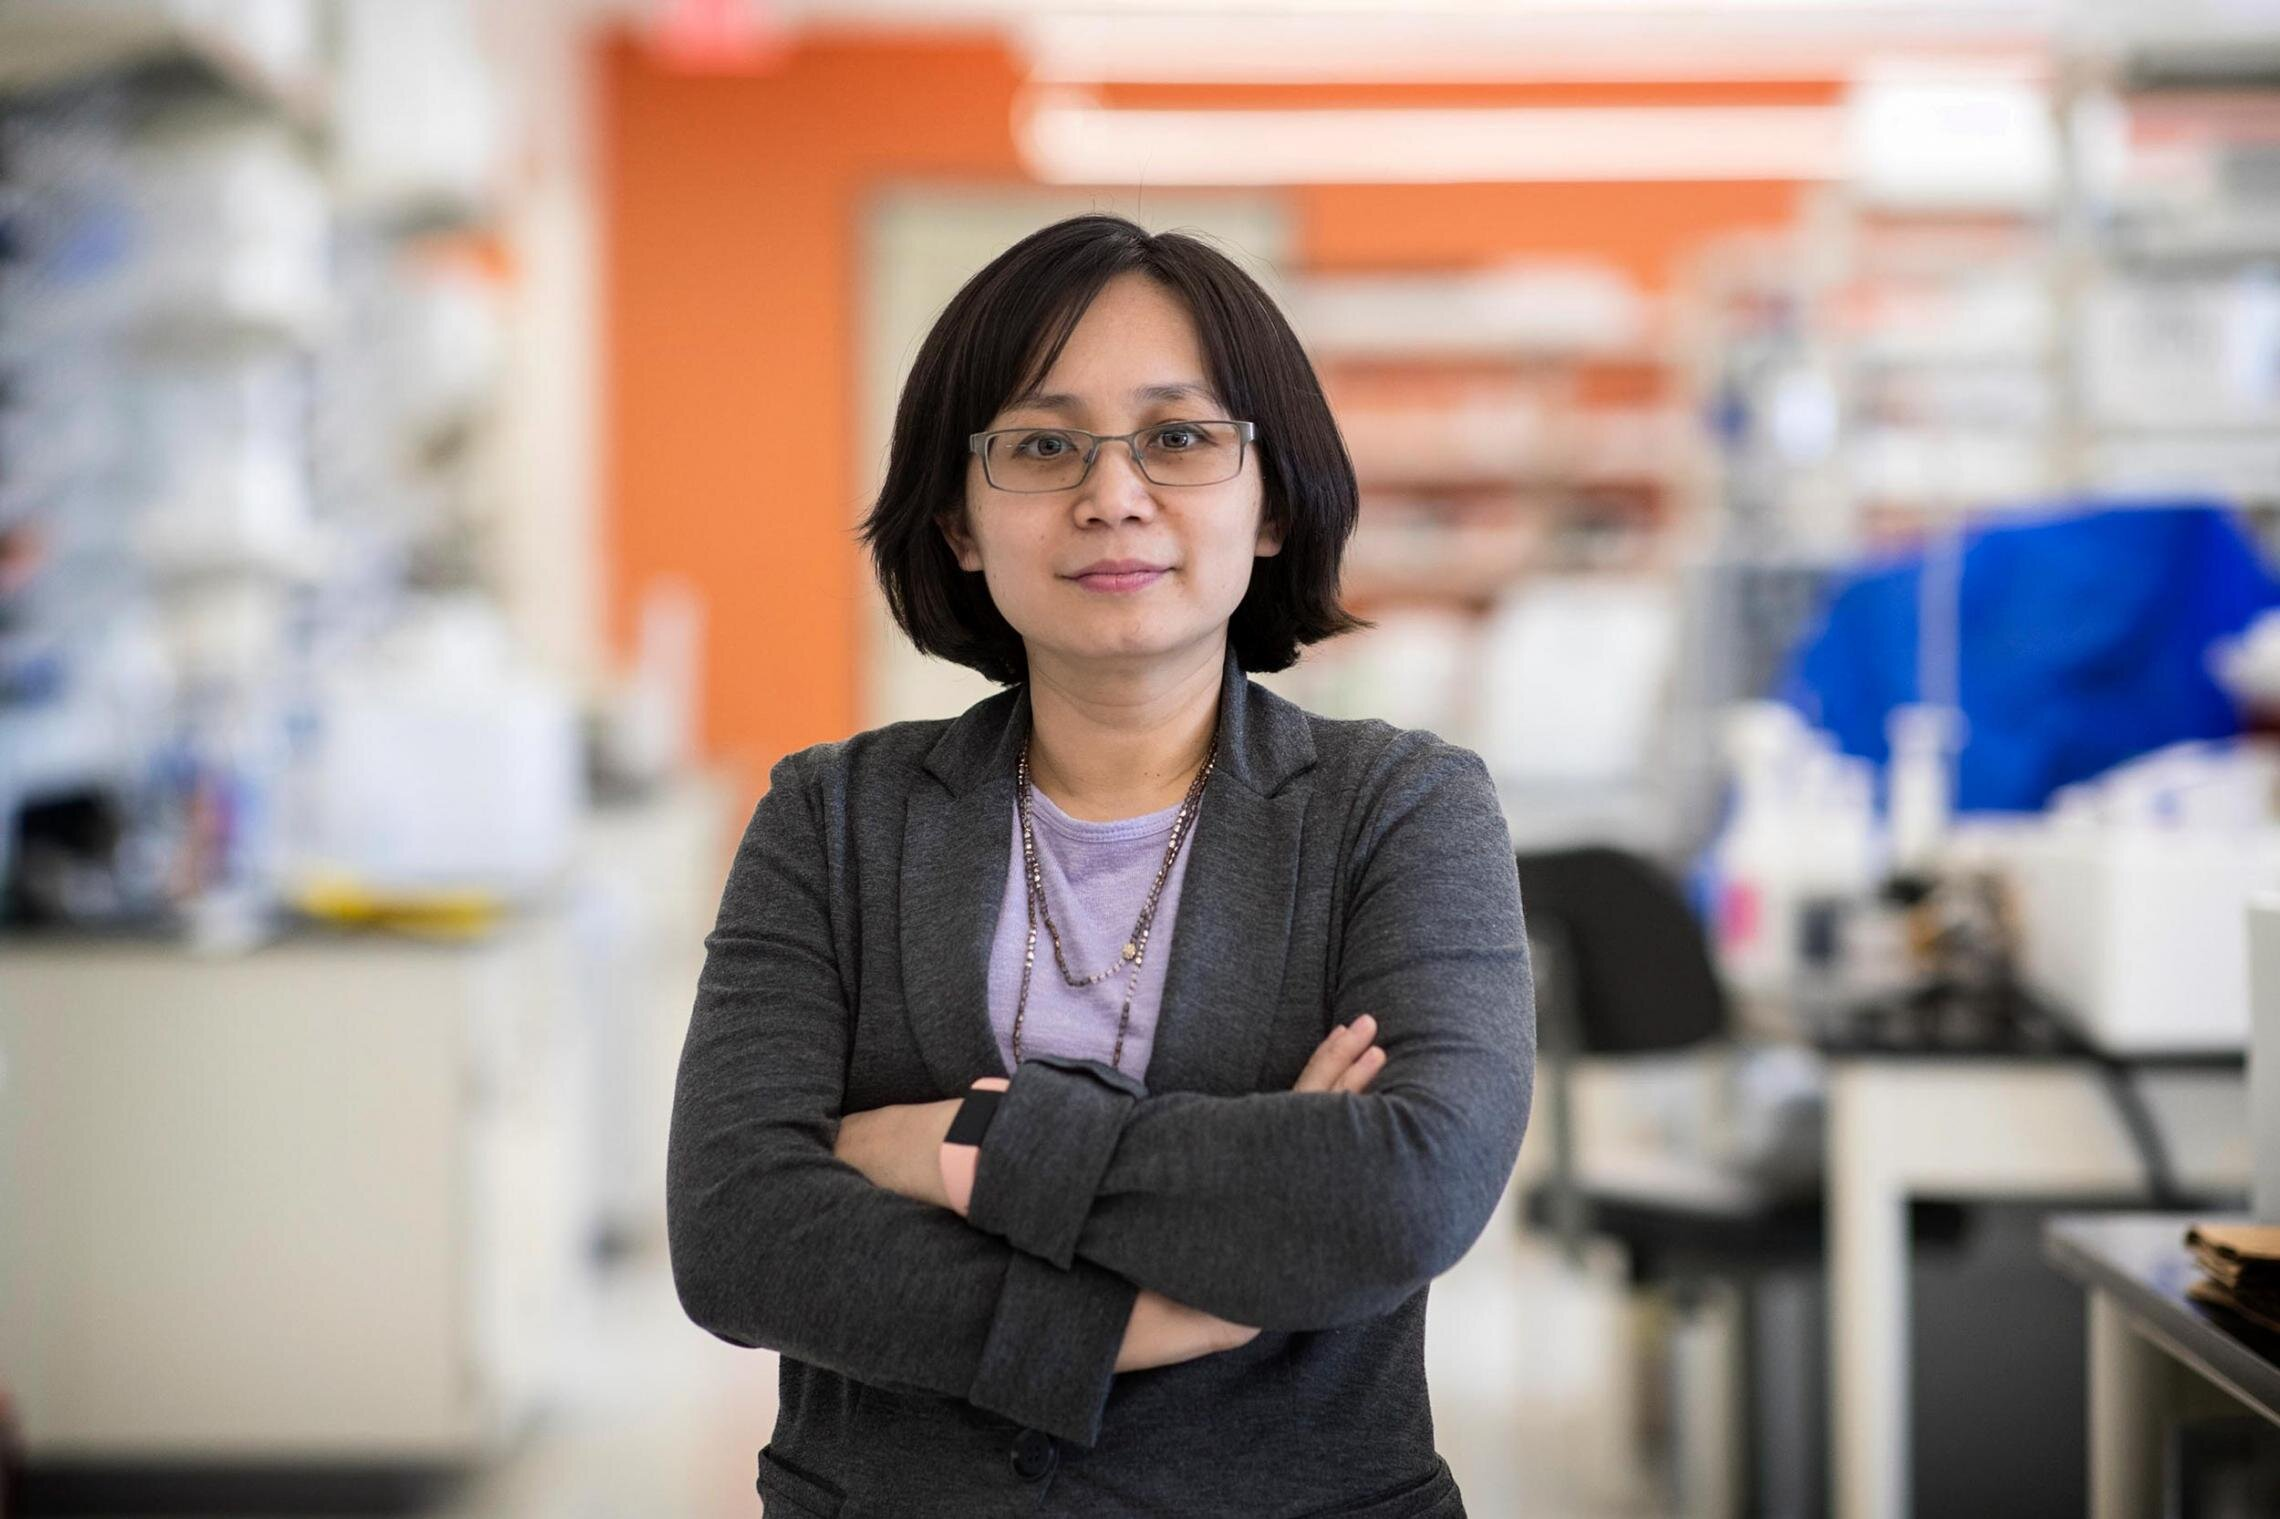 Researcher seeks early detection to forestall glaucoma's ravages